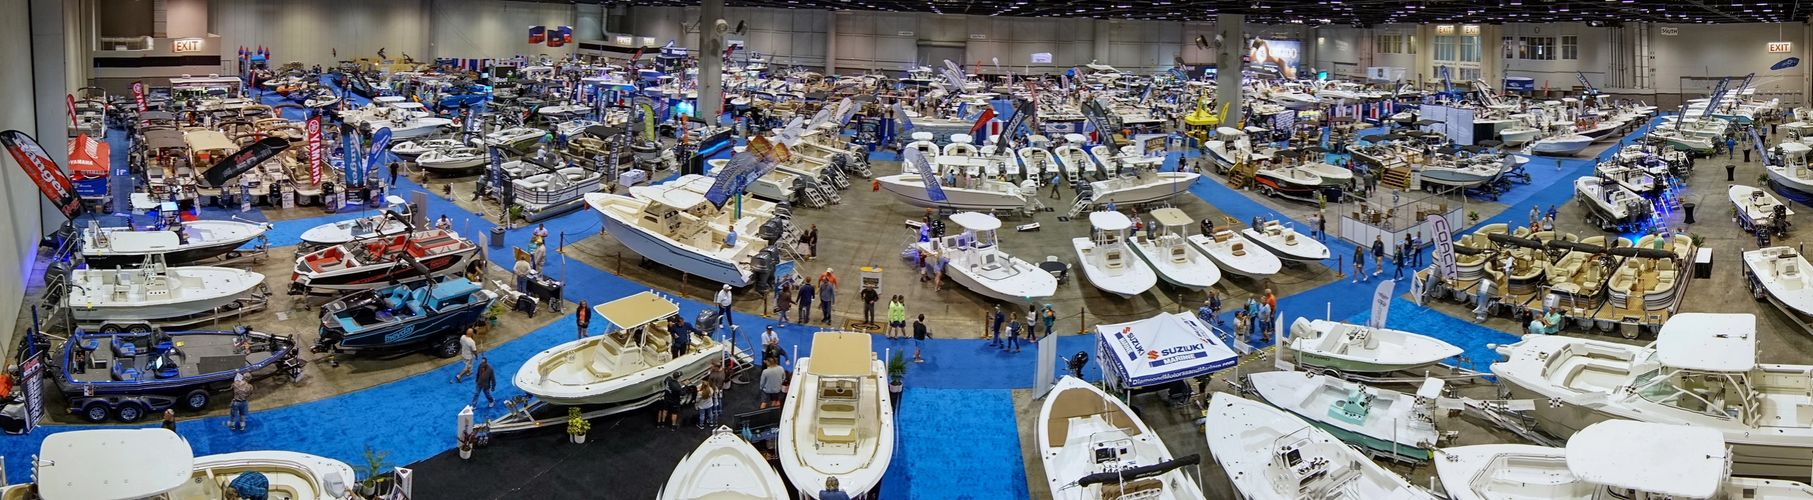 A picture of the boat show with over 400 boats.